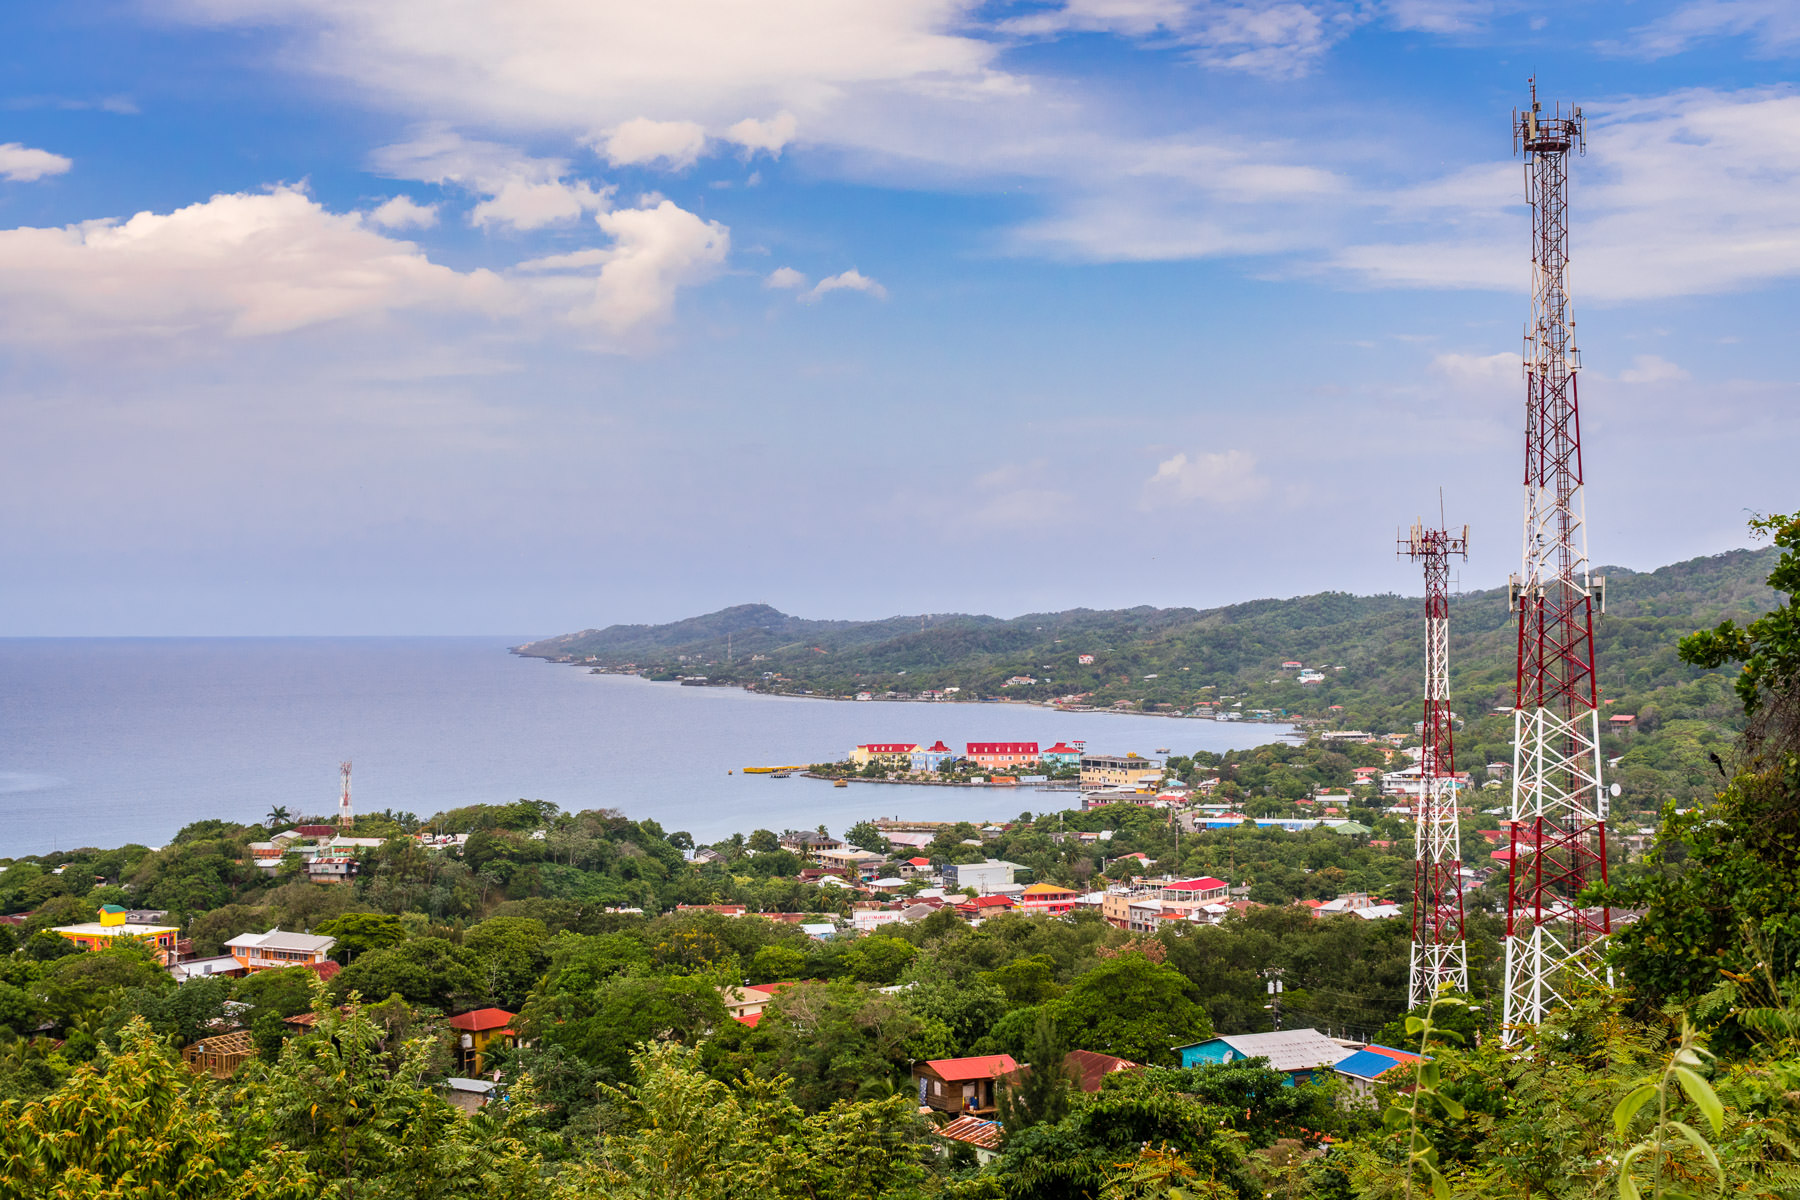 Cell towers rise over the lush tropical landscape of the island of Roatan, Honduras.